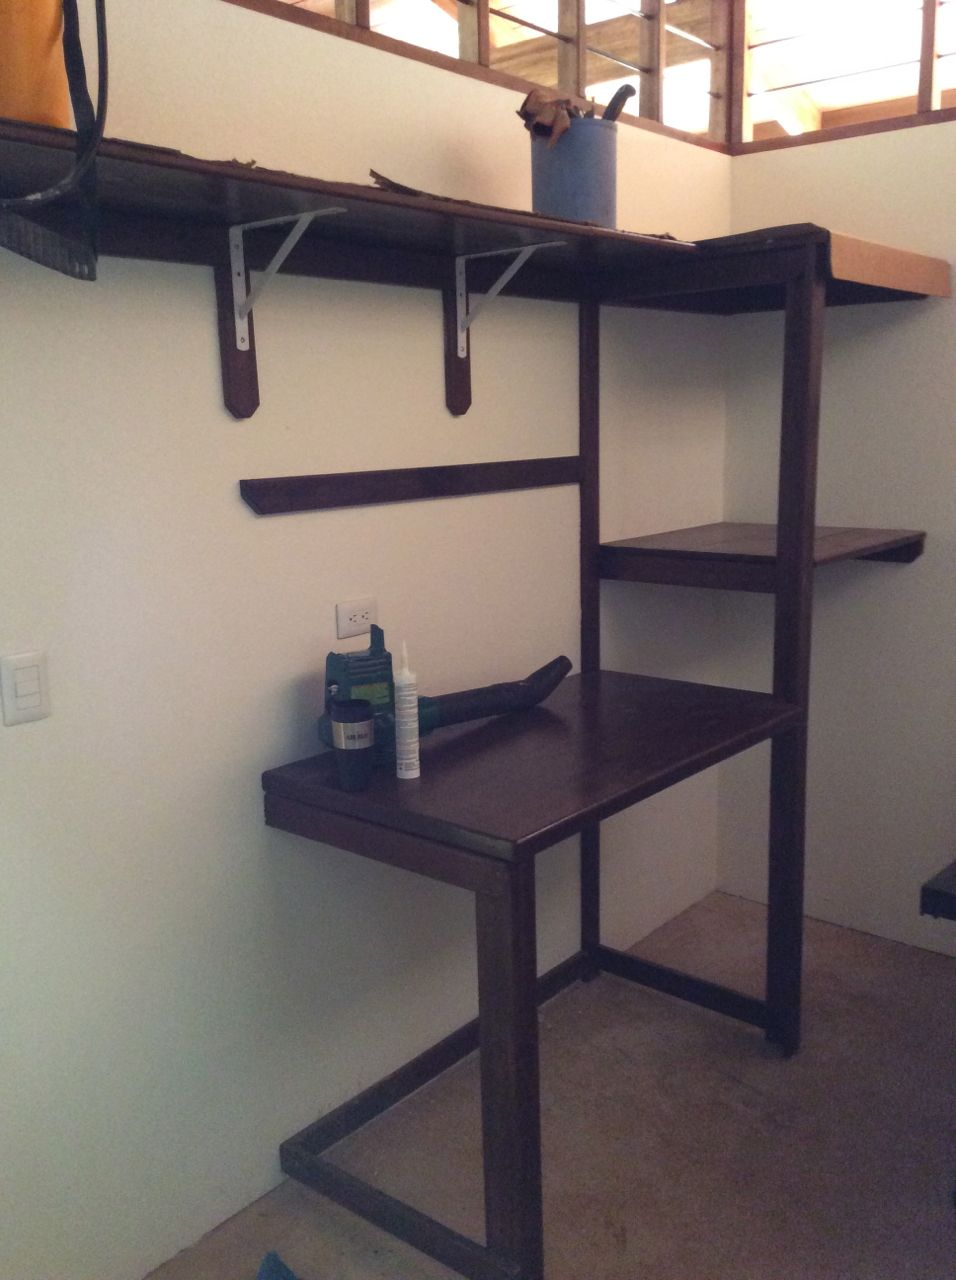 Wrok bench shelving